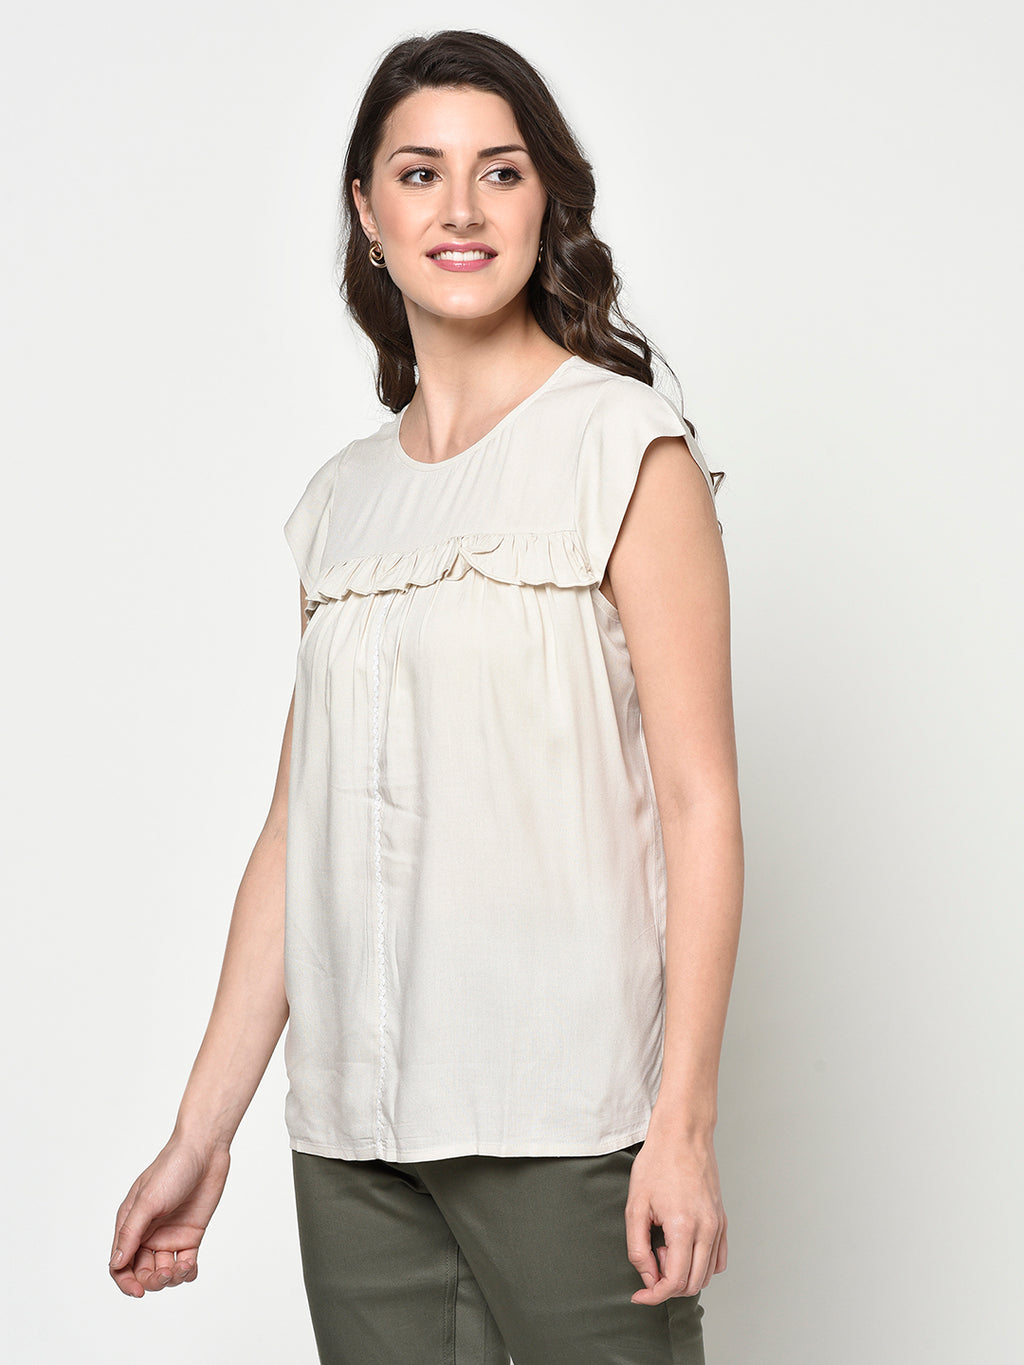 Cream Ladies Sleeveless Top with Front Ruffles - Avsoy